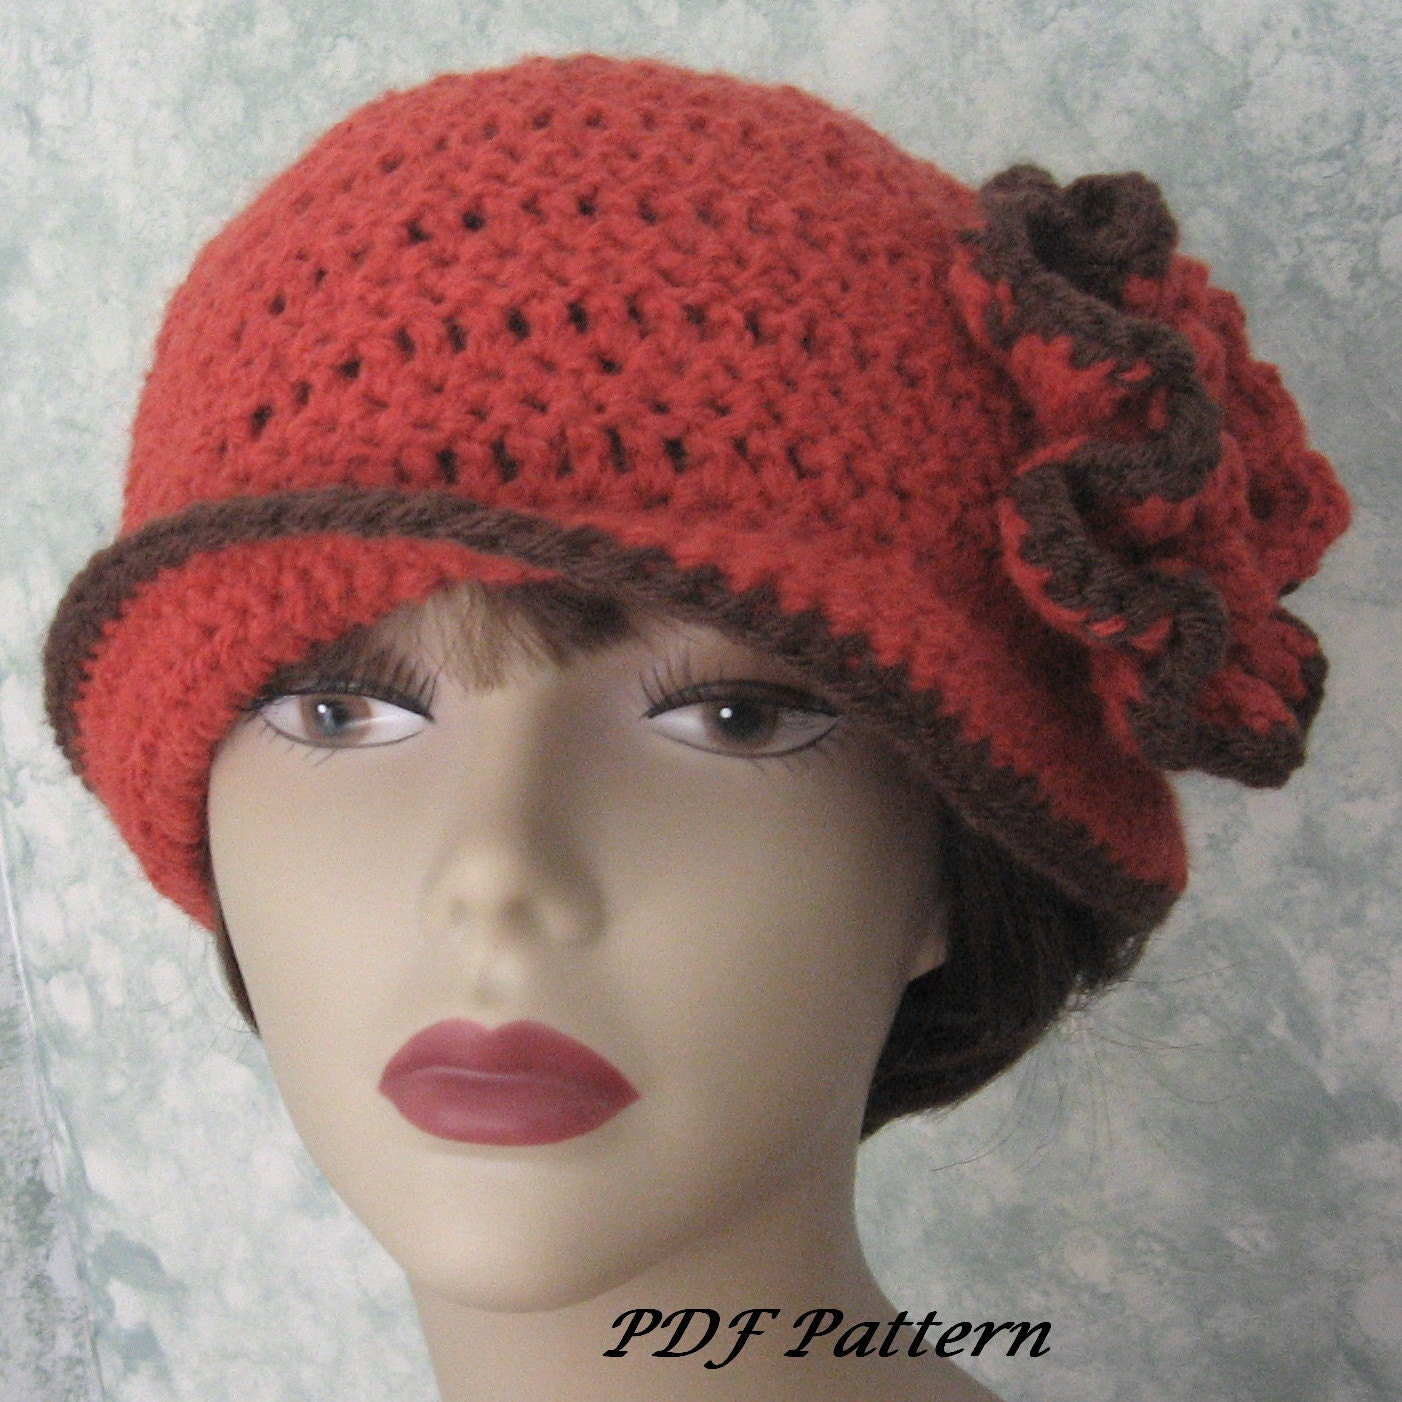 womens crochet hat pattern with flower trim easy to